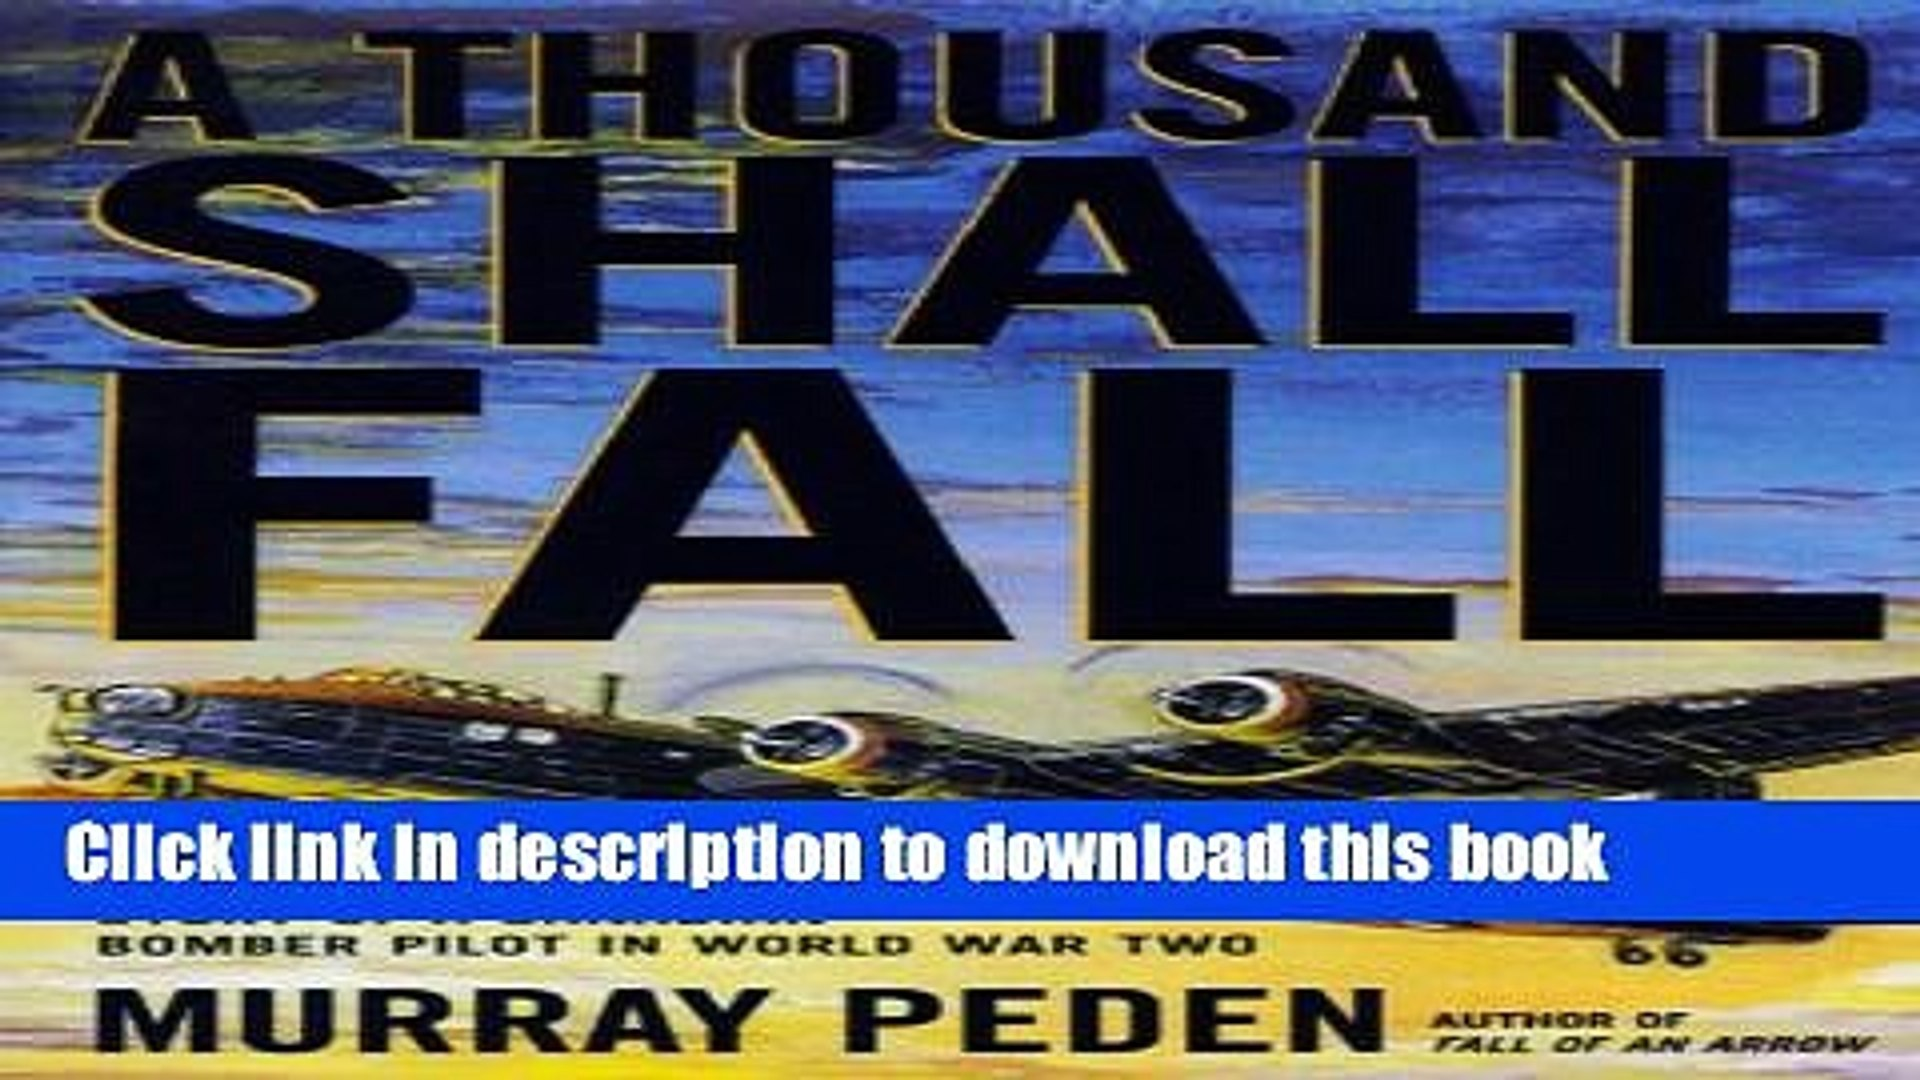 [Popular] A Thousand Shall Fall: The True Story of a Canadian Bomber Pilot in World War Two Kindle